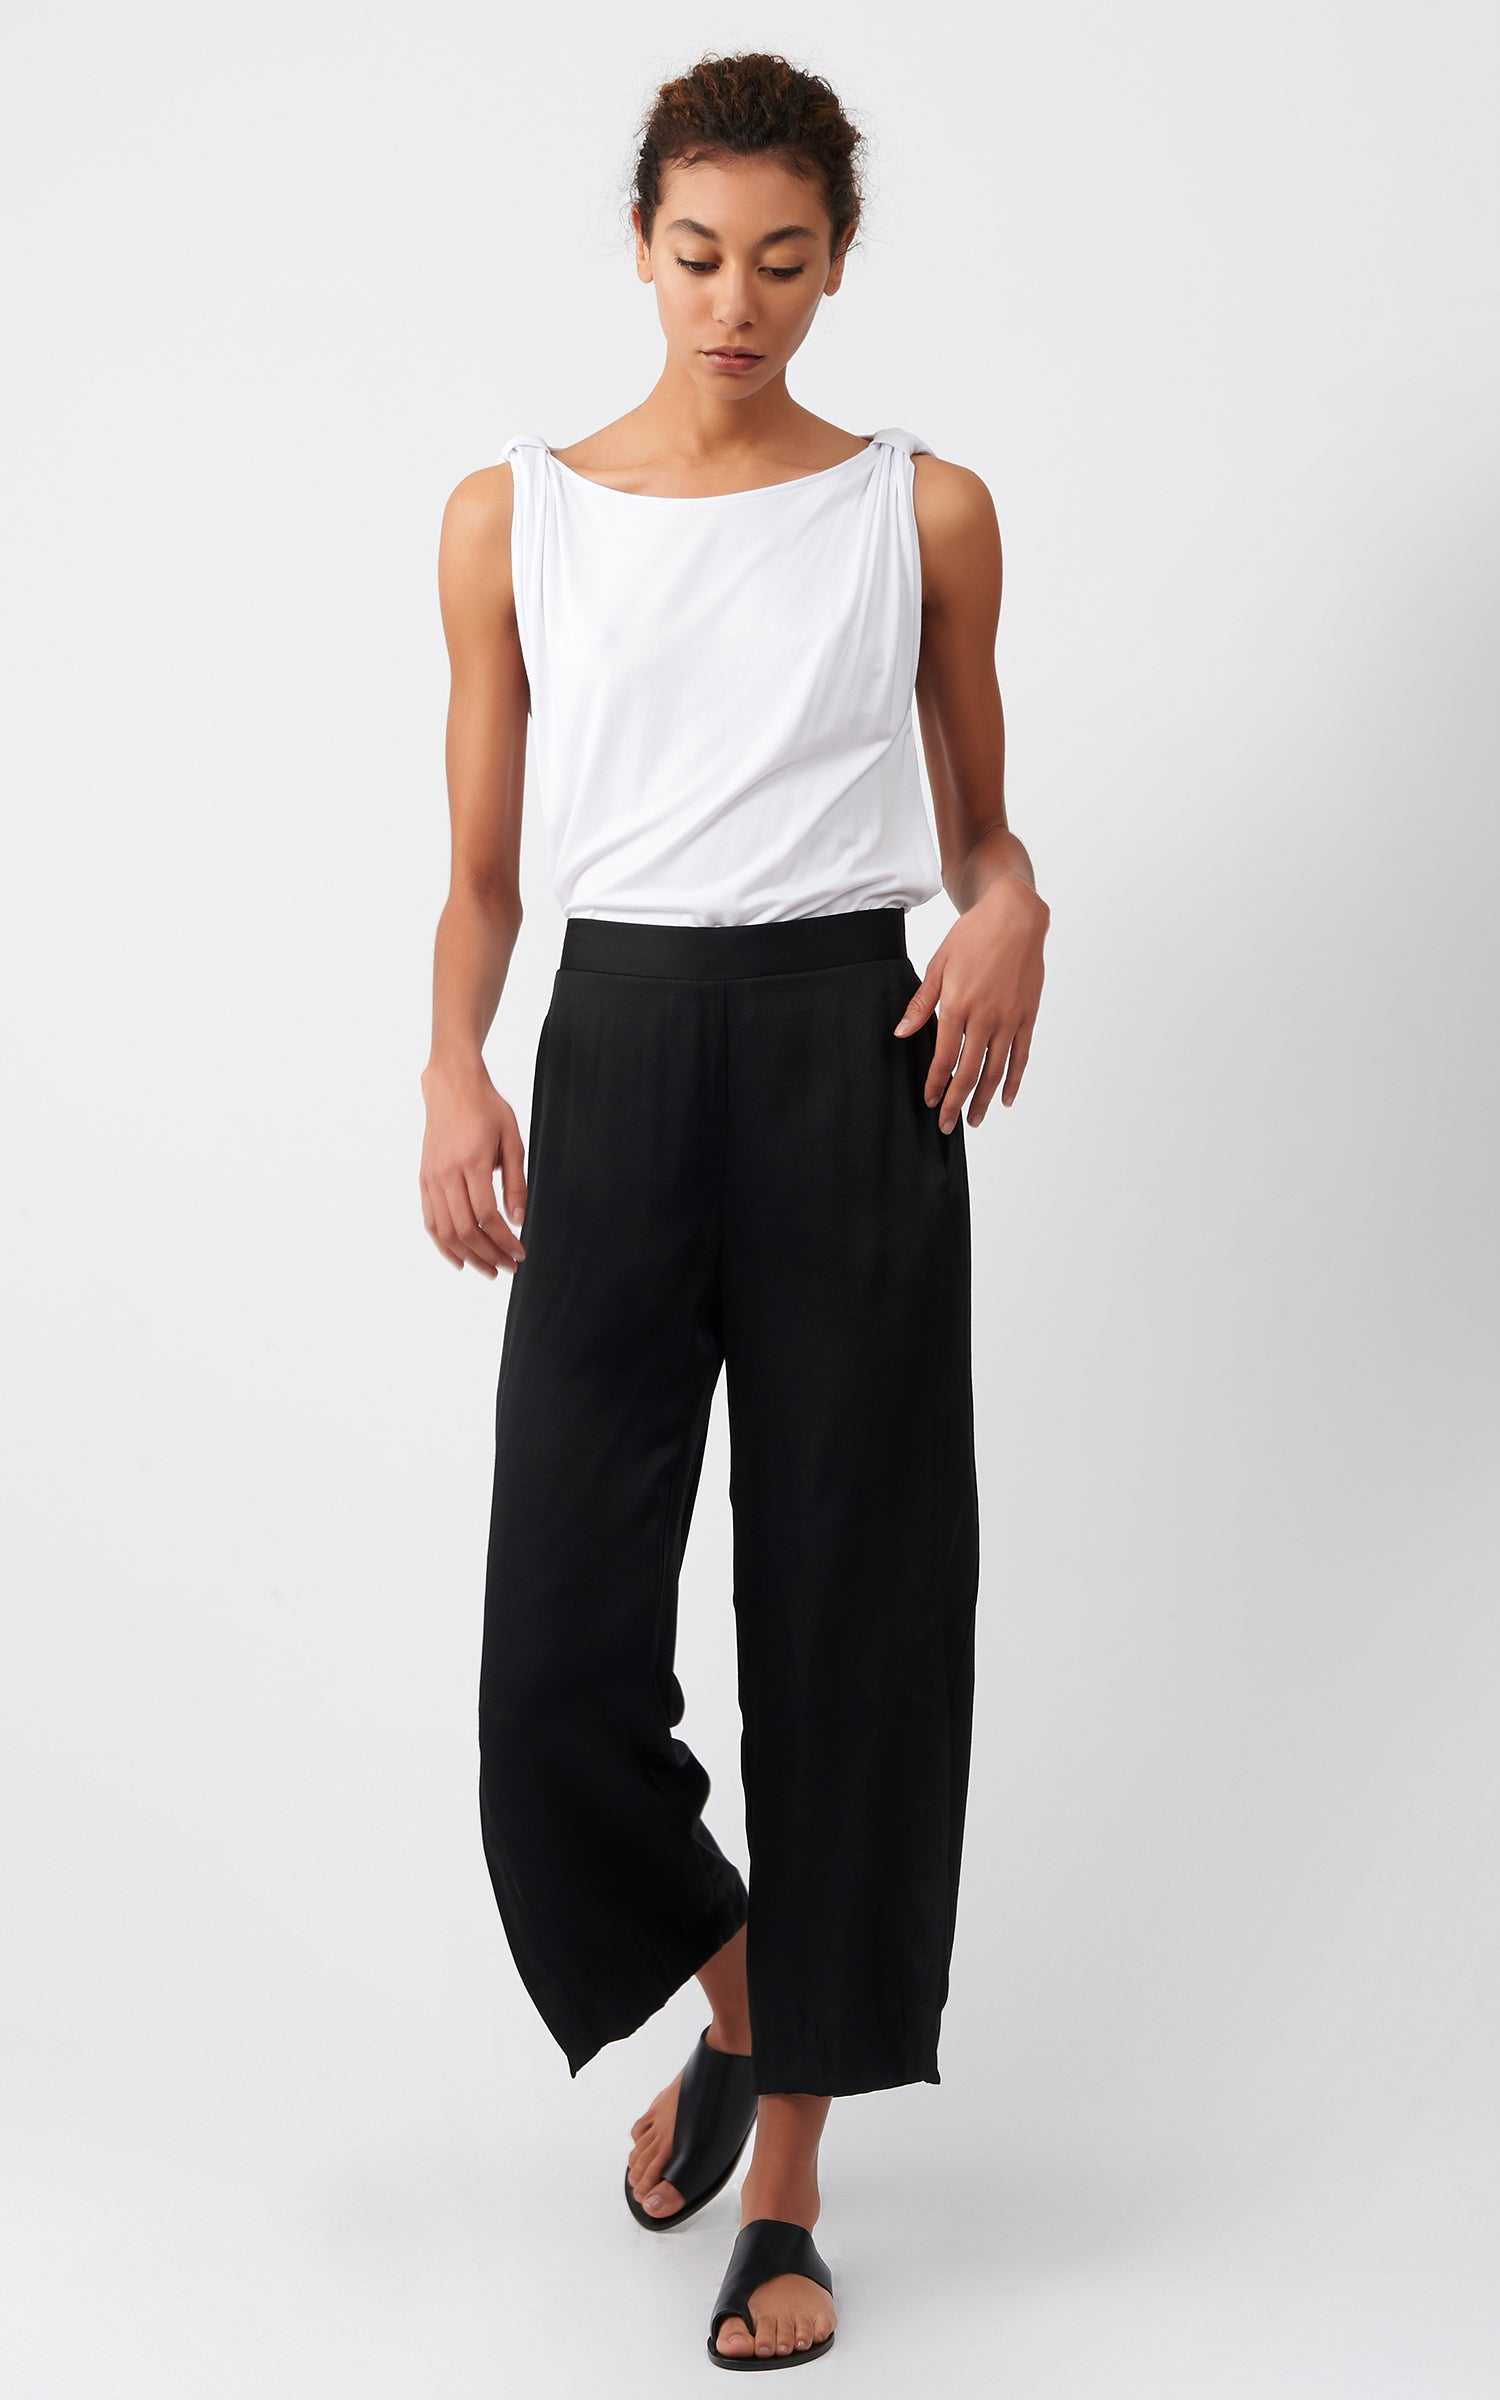 SATIN SIDE KICK PANT